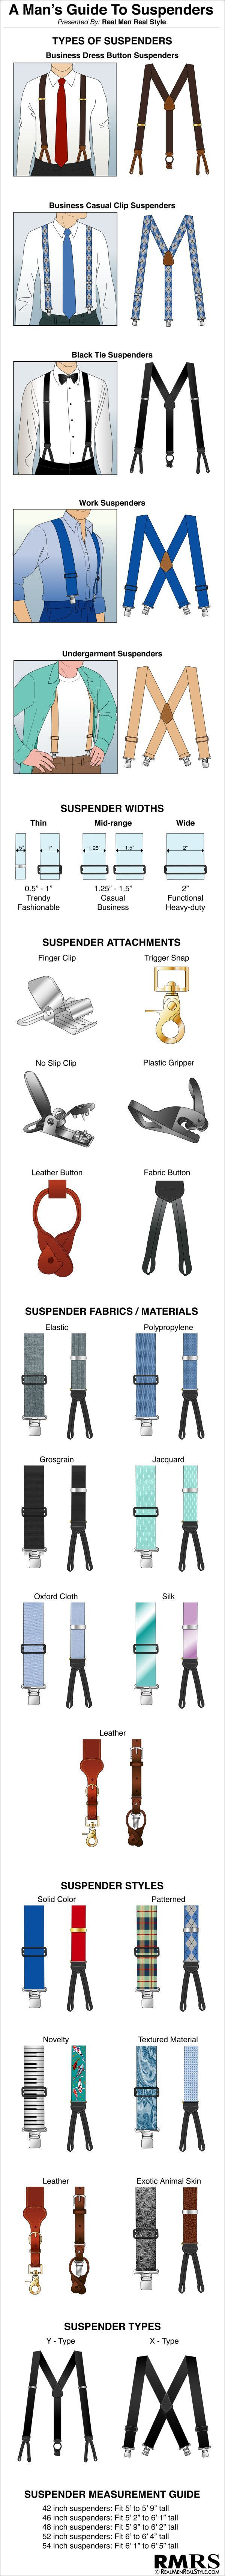 A Man's Guide To Suspenders | Trouser Braces Infographic | Suspender Guide